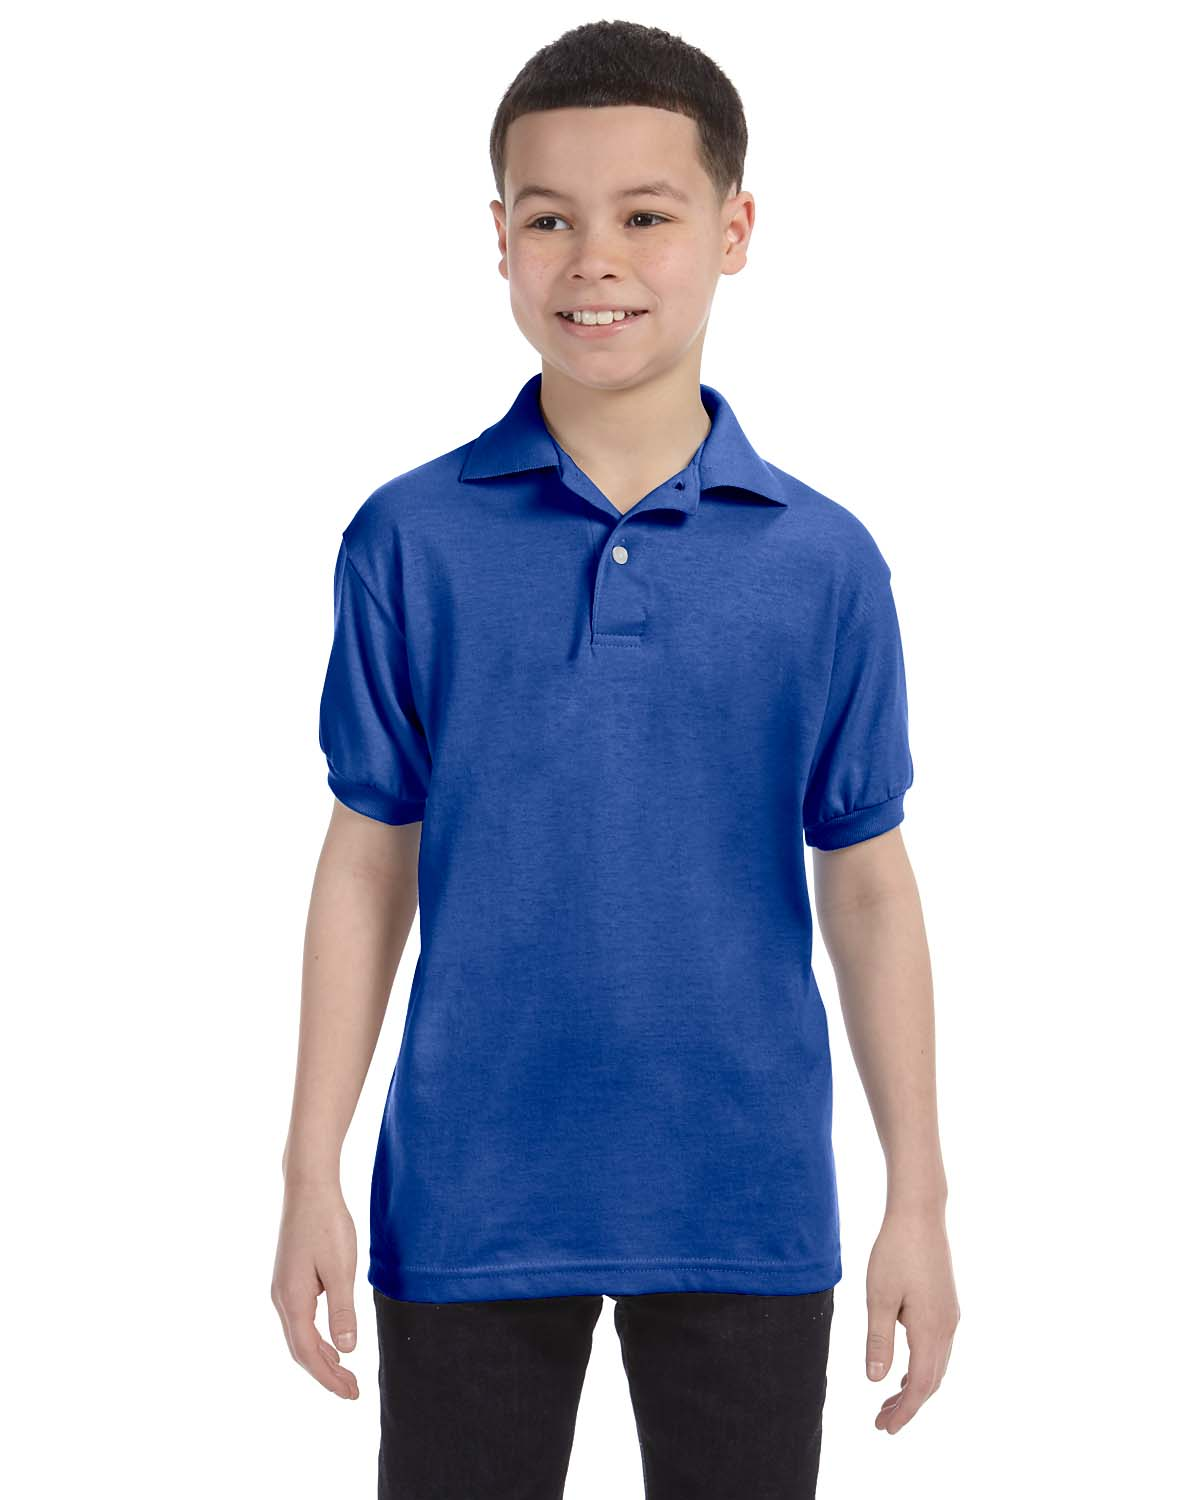 Hanes Youth 5.2 Oz., 50/50 ComfortBlend® EcoSmart® Jerse